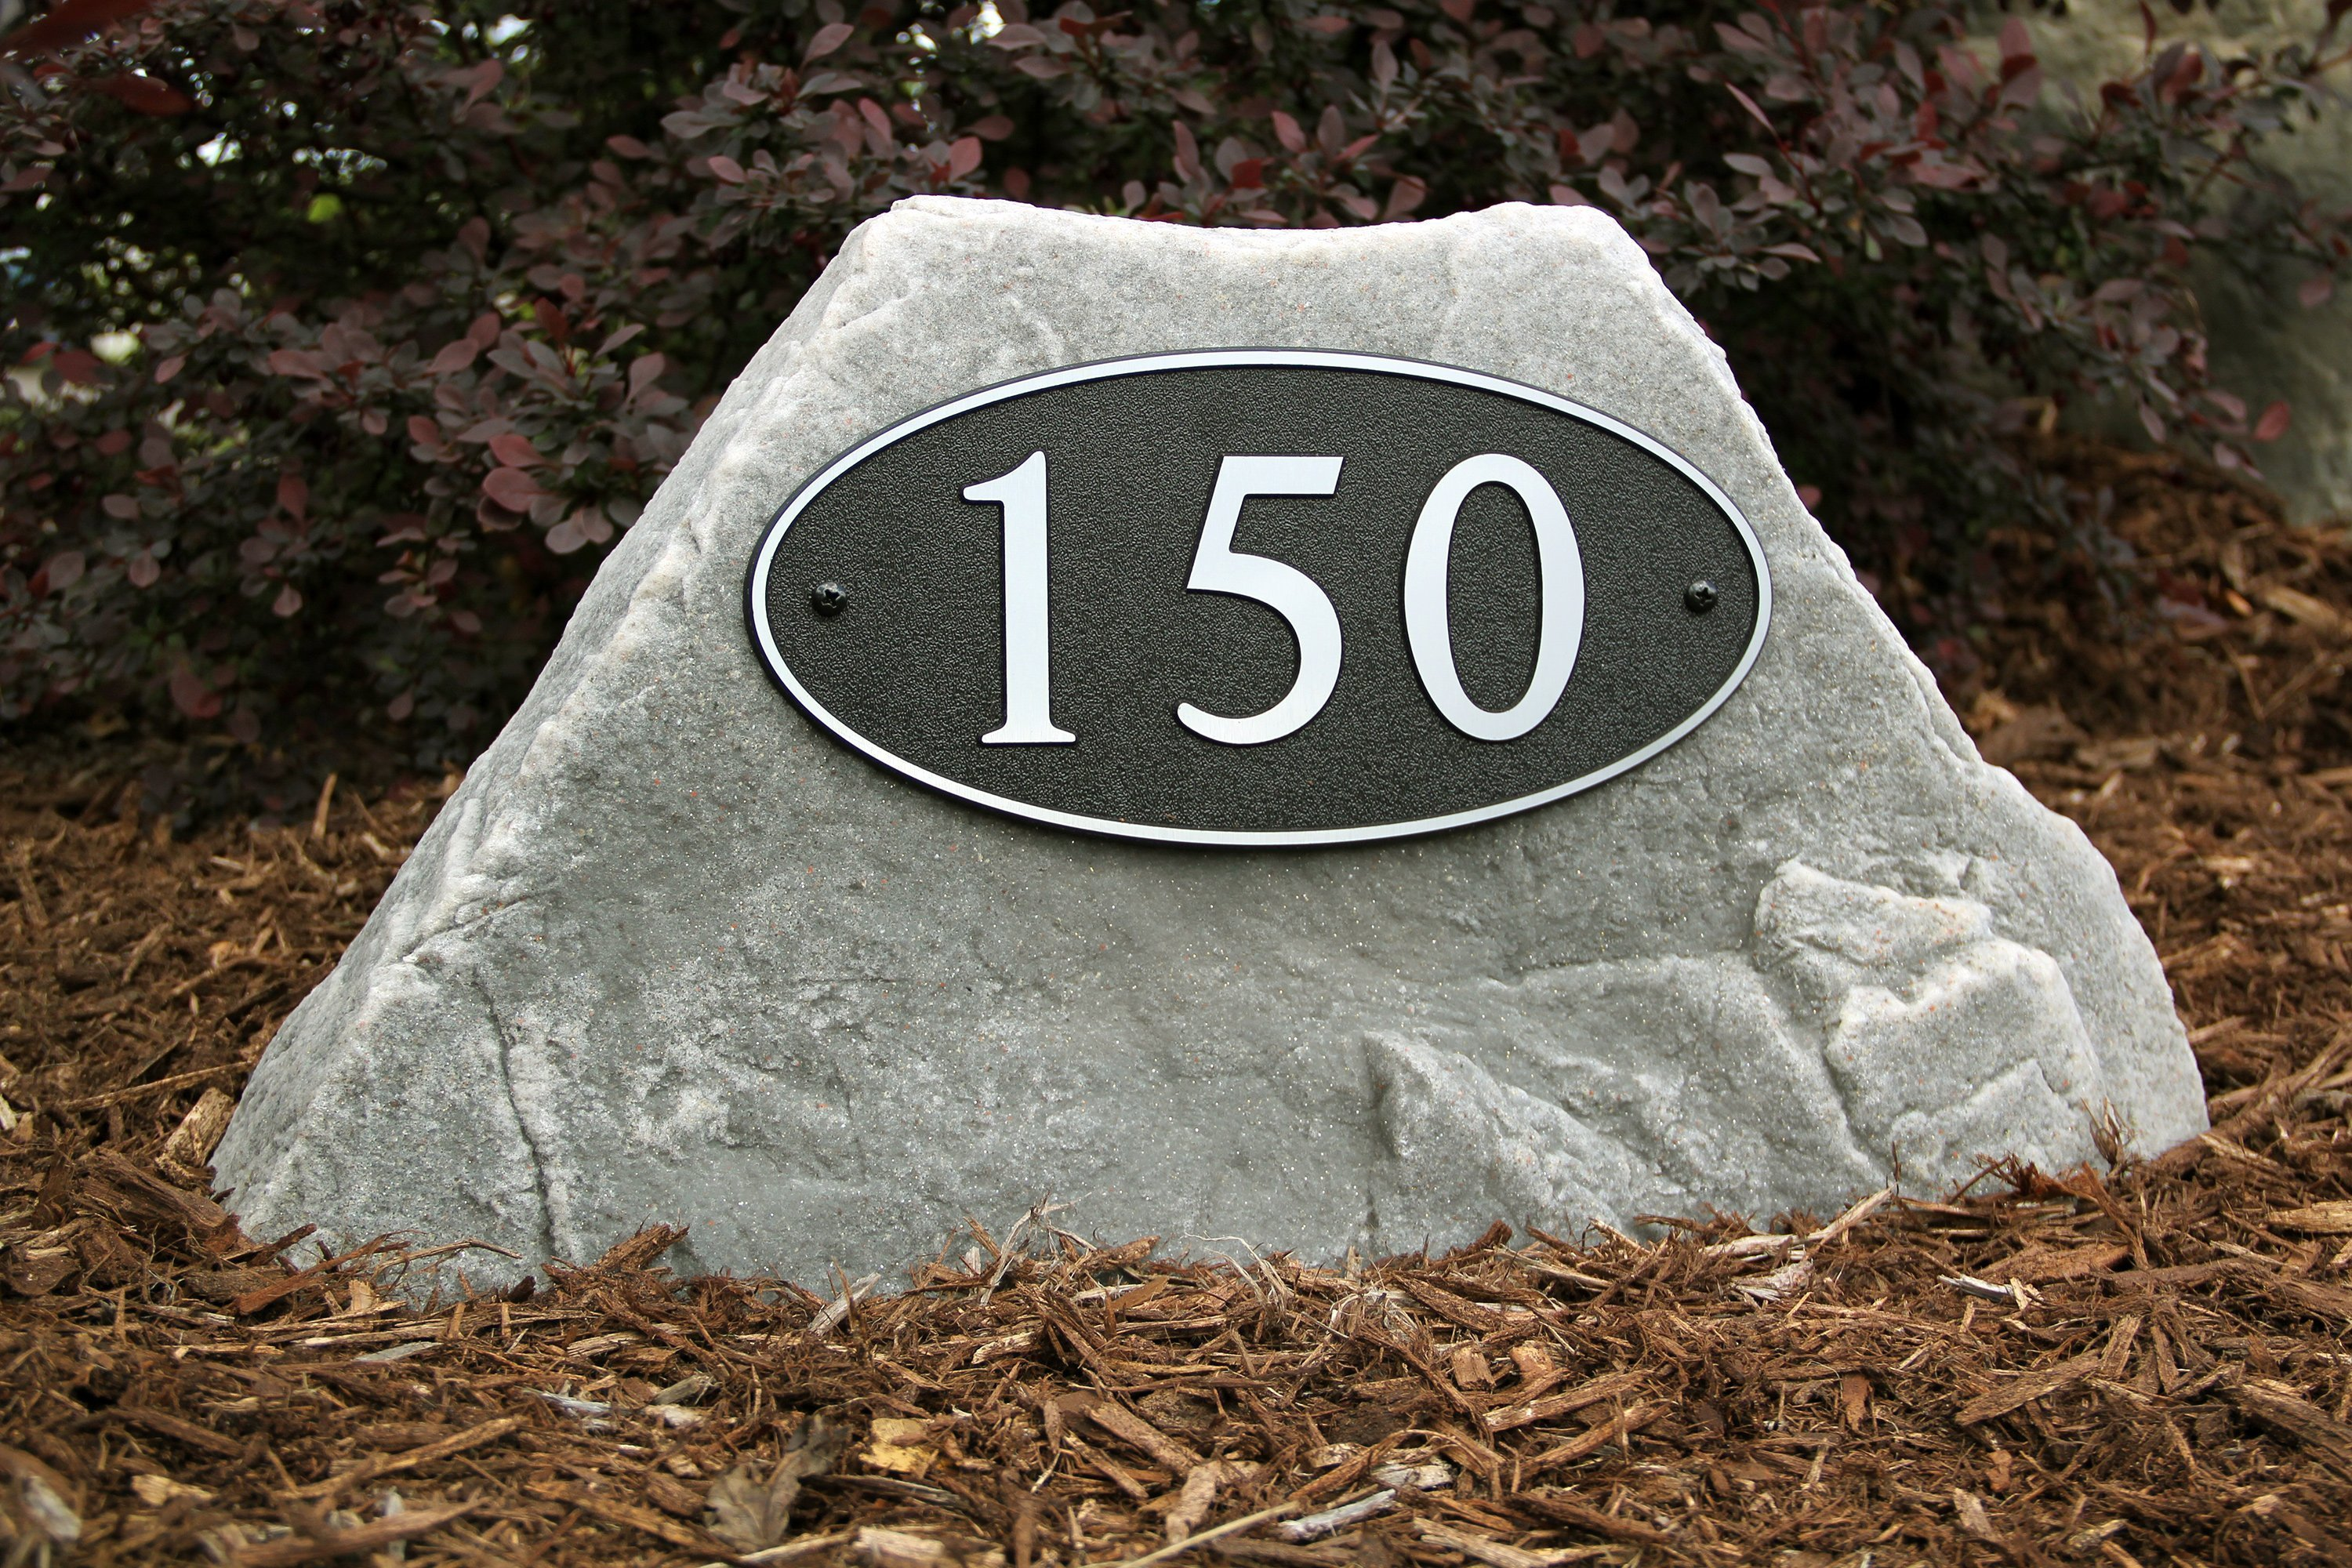 House Address Rock 105 650m